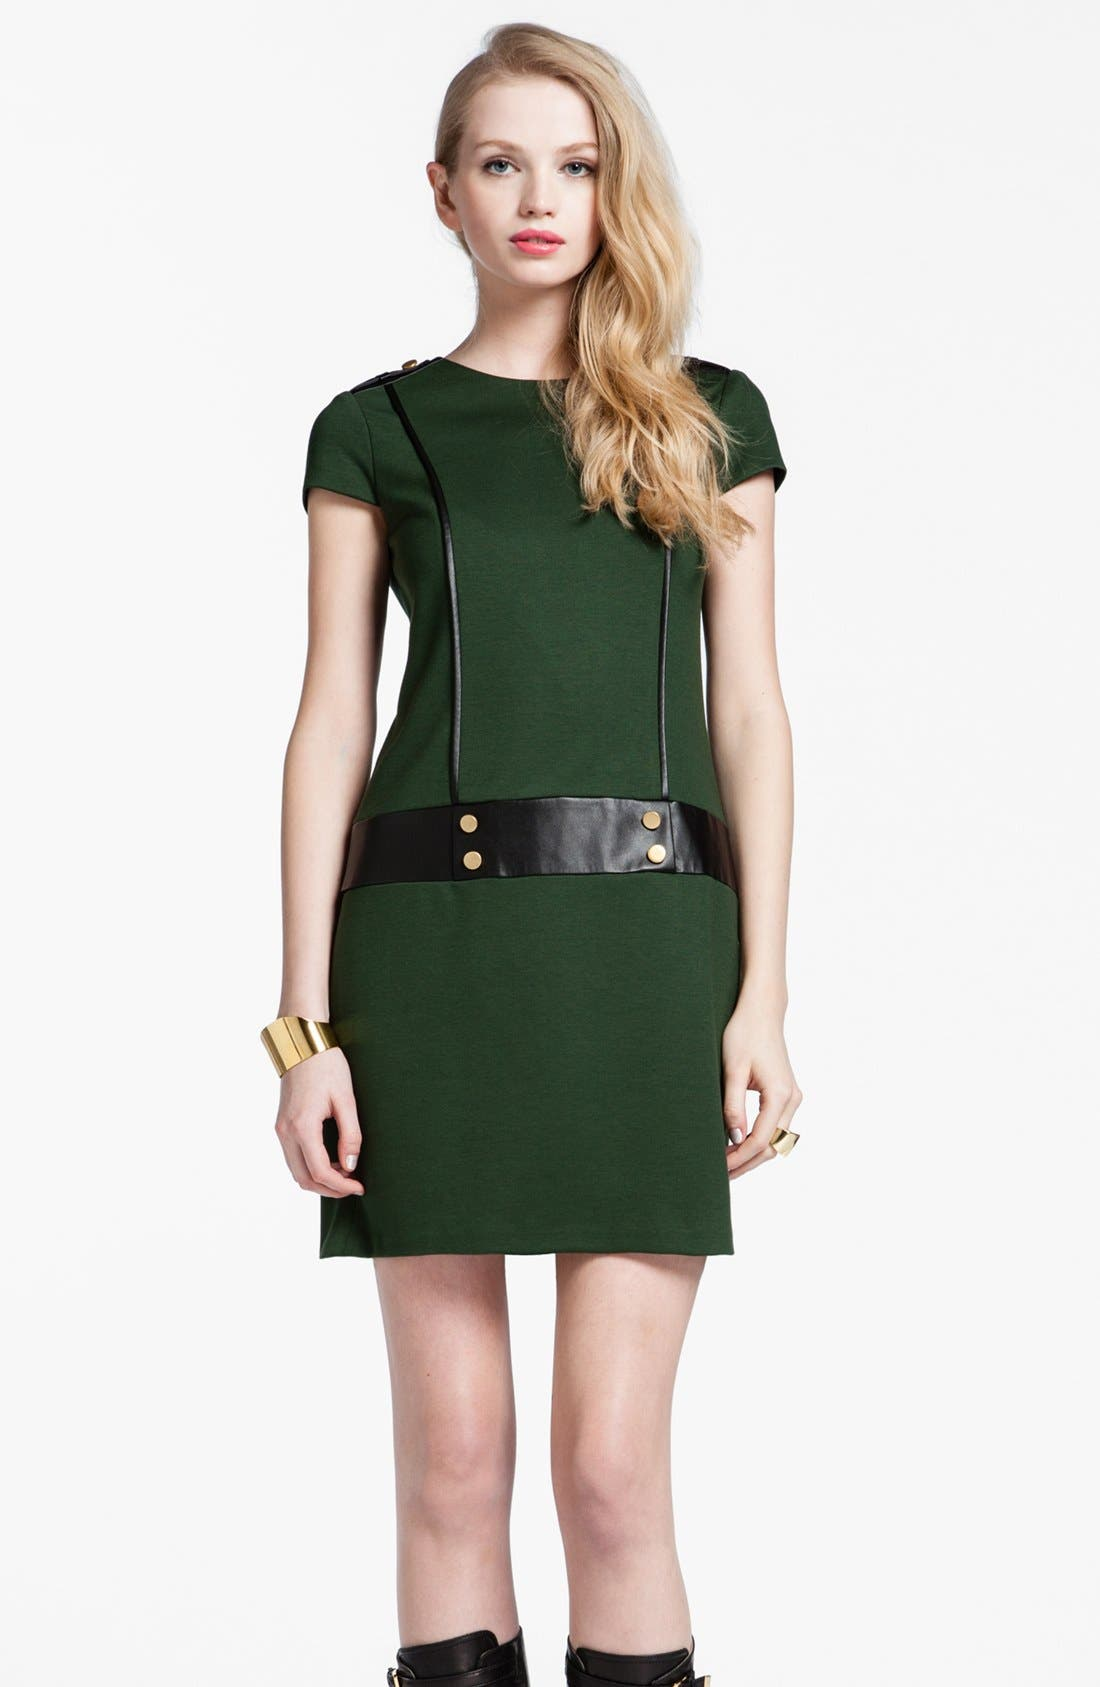 Alternate Image 1 Selected - Cynthia Steffe 'Perla' Faux Leather Trim Shift Dress